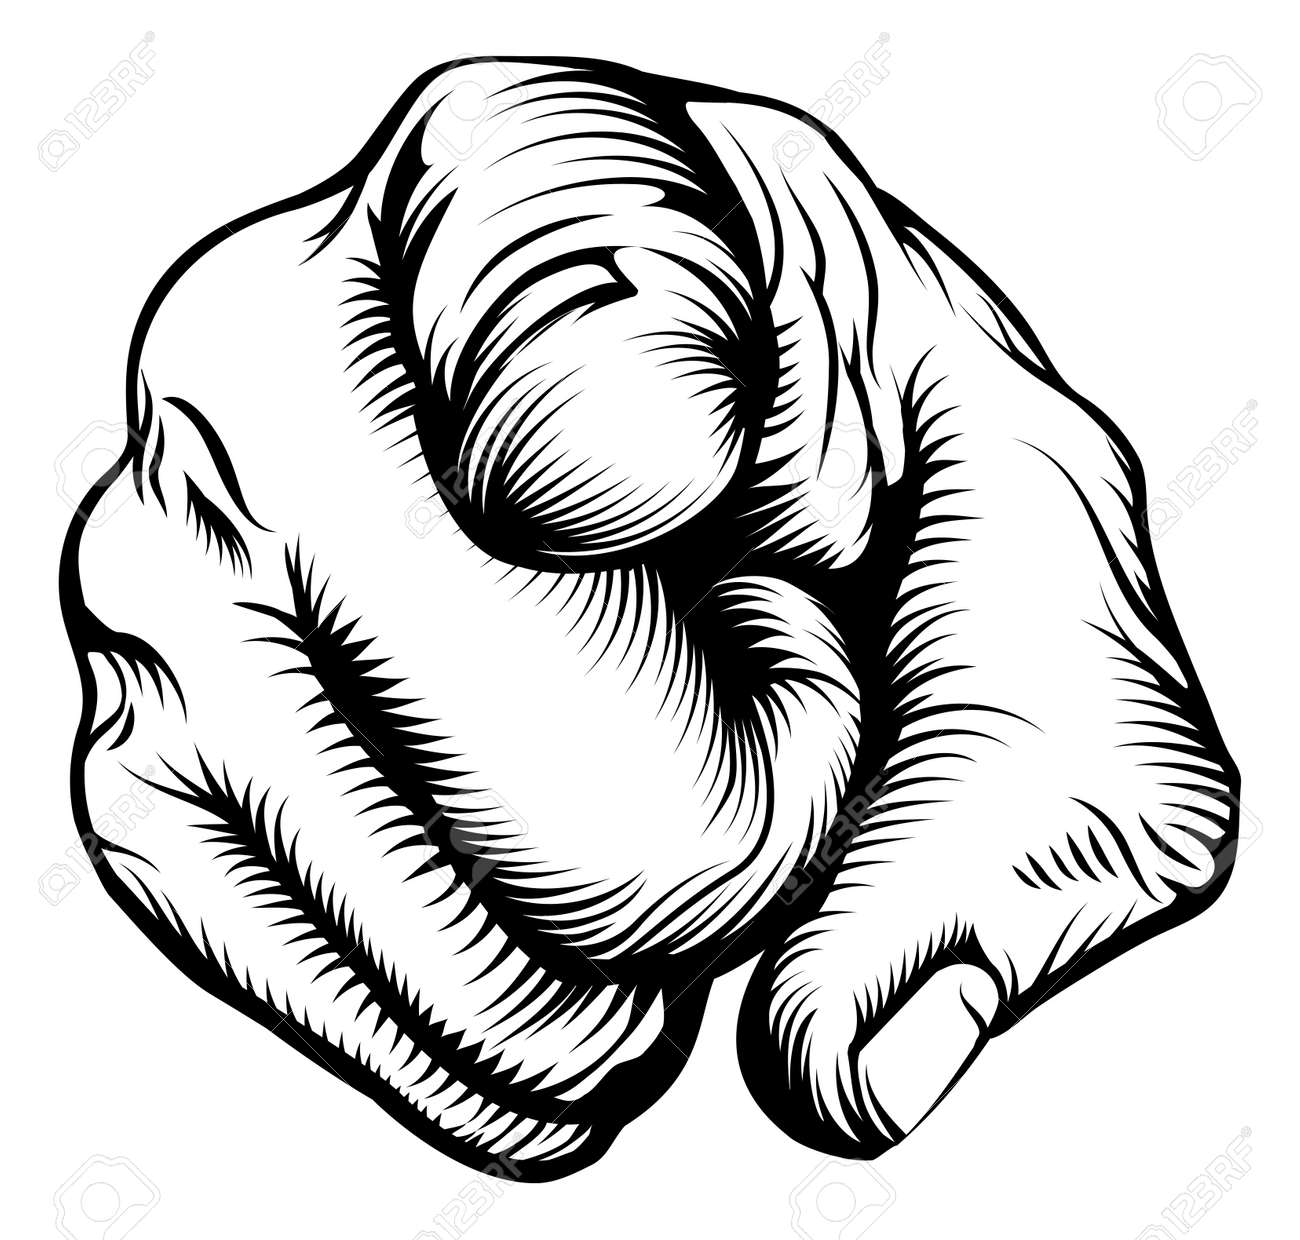 15824472-Retro-black-woodcut-print-style-hand-pointing-finger-at-viewer--Stock-Photo.jpg